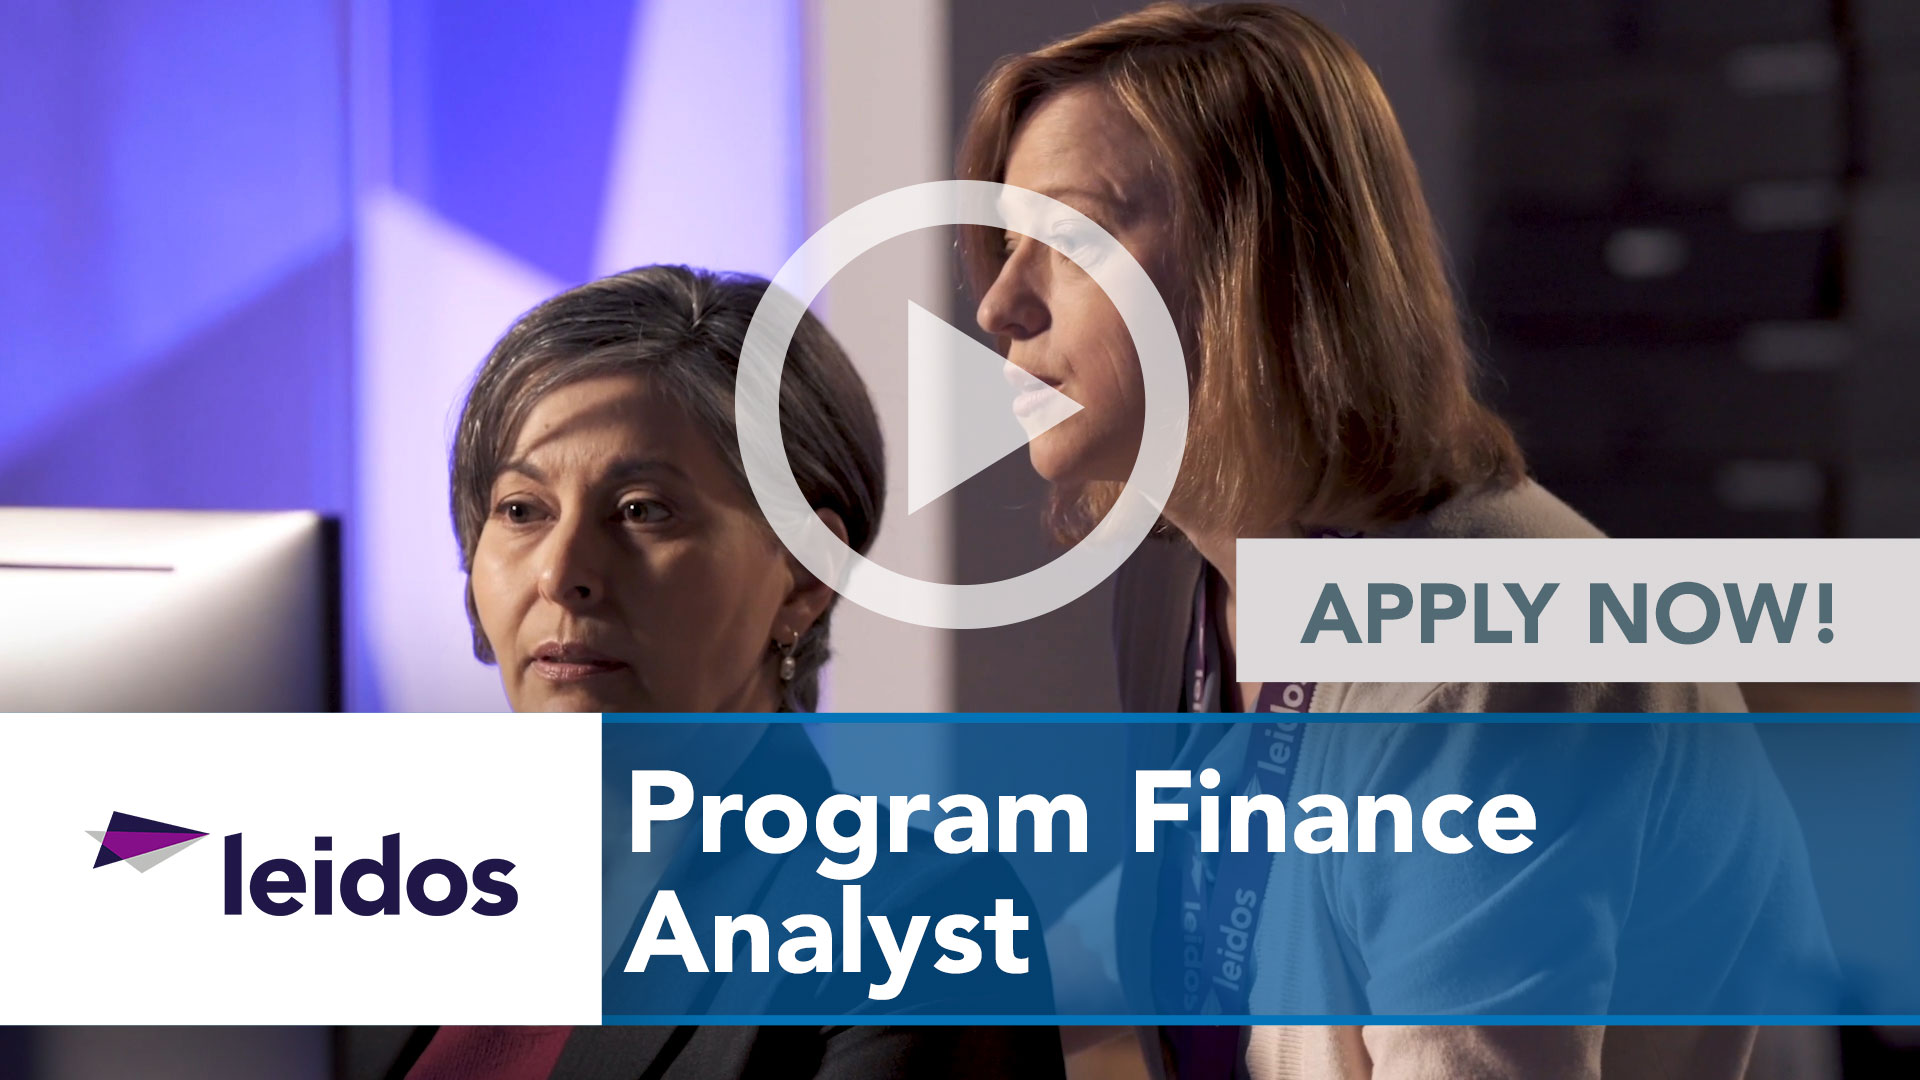 Watch our careers video for available job opening Program Finance Analyst in National Capital Region with